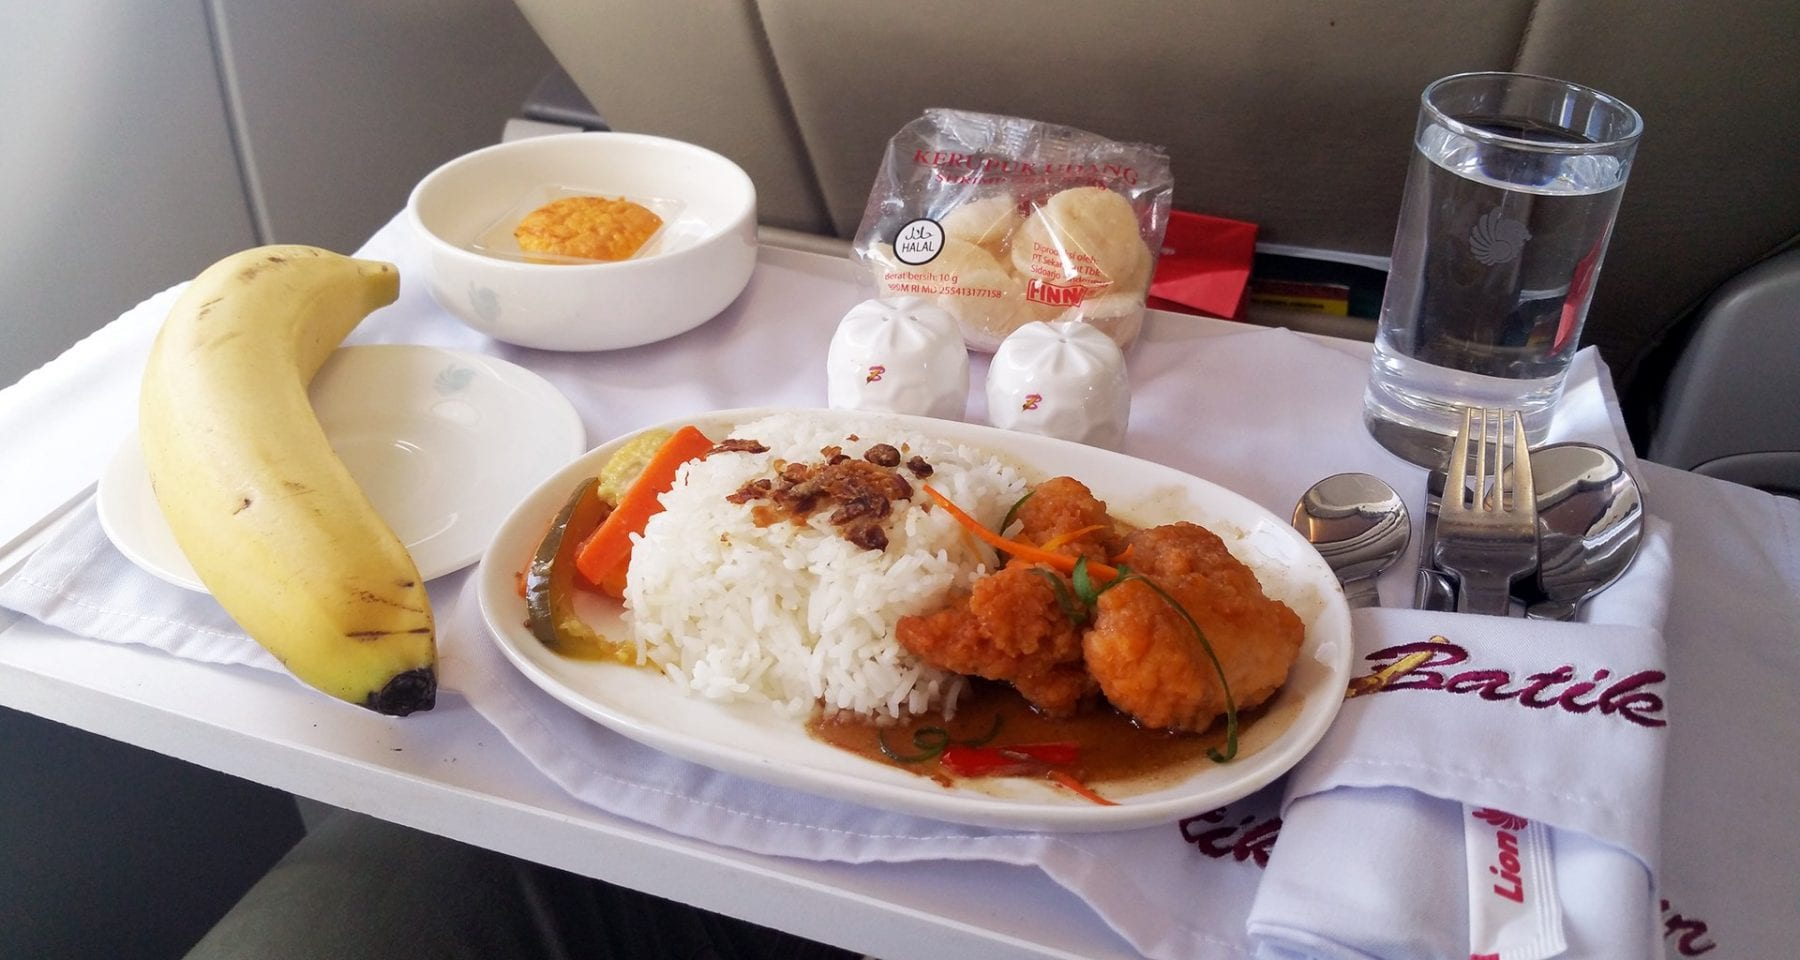 Batik air inflight meal review i thought it was quite funny that they simply slapped a banana down on the plate most premium cabin airlines would have cut it up and presented it better stopboris Image collections